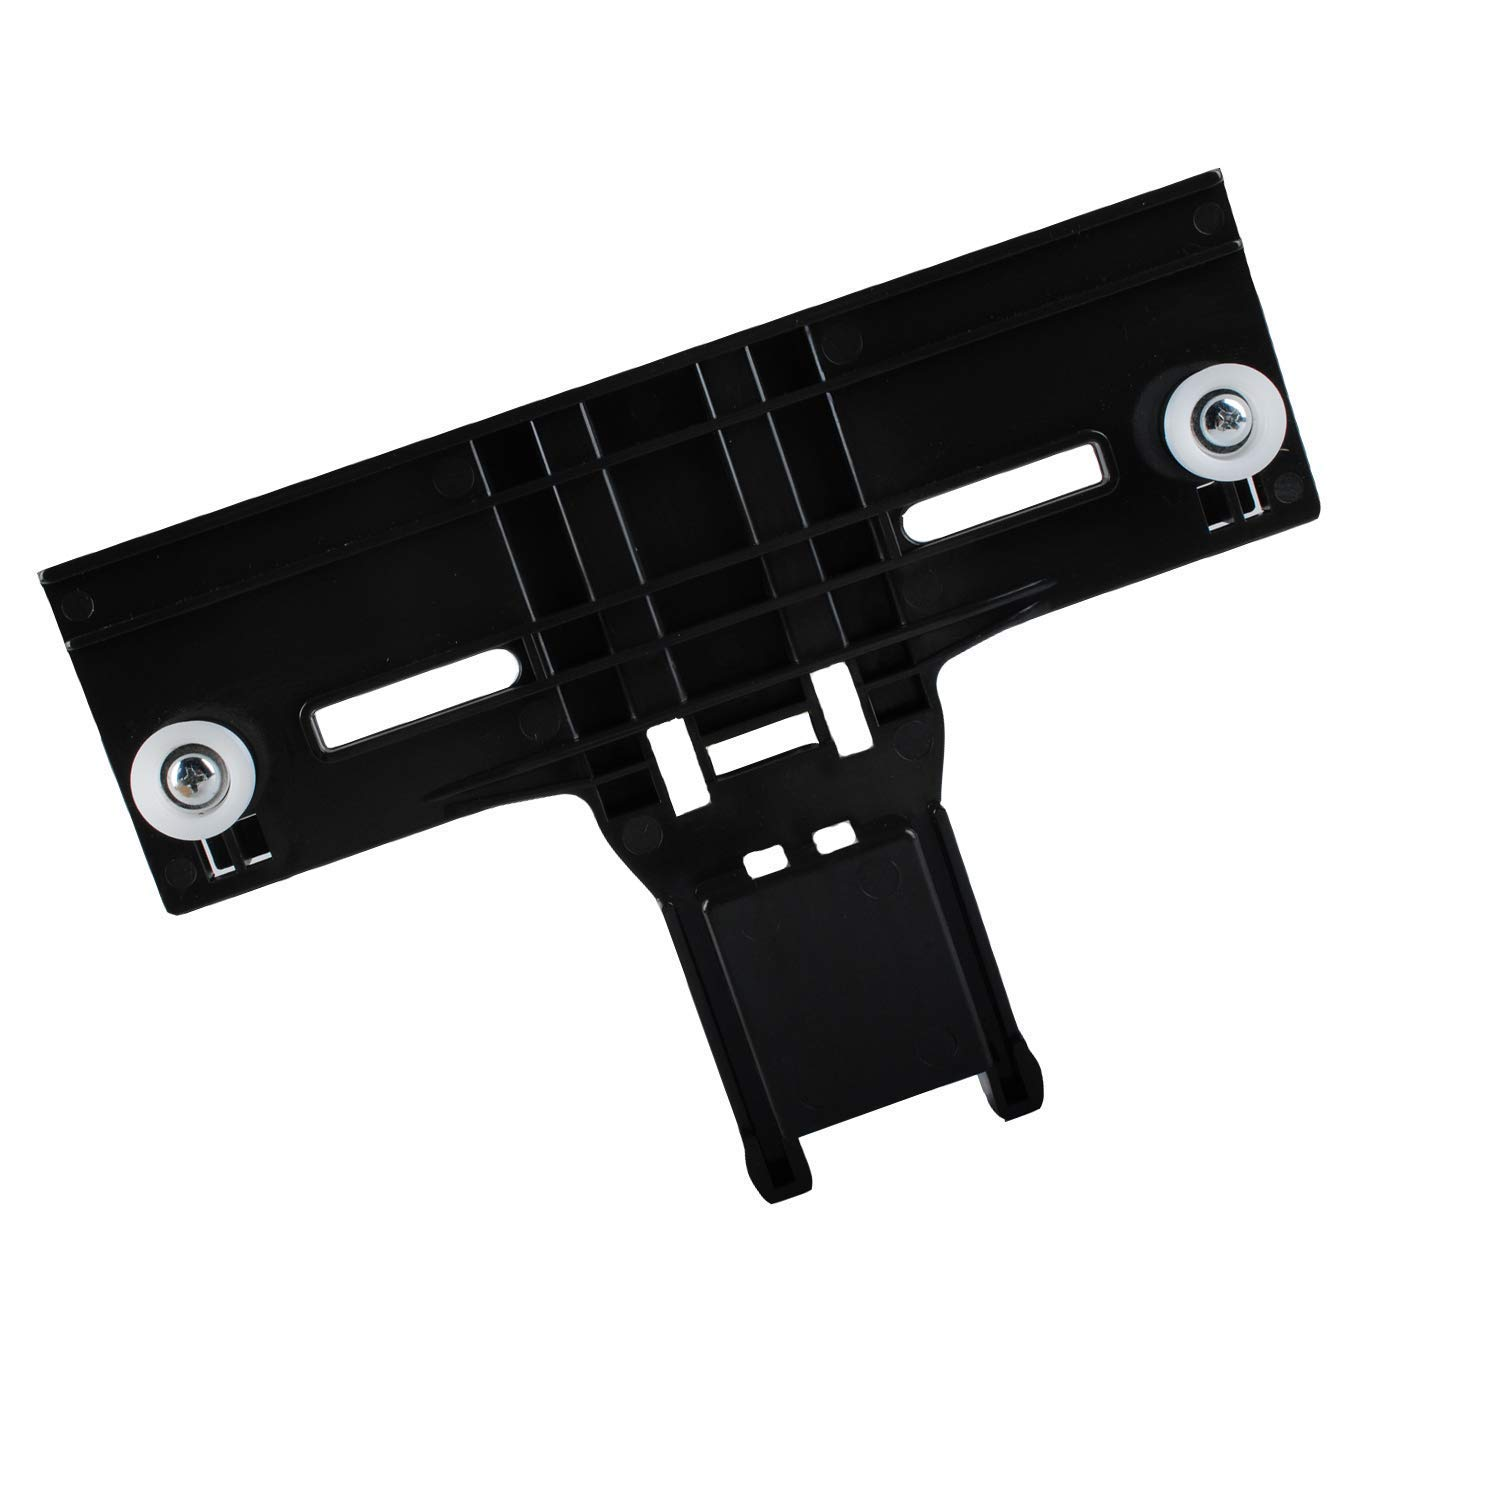 W10350376 Dishwasher Top Rack Adjuster Compatible For Whirlpool & Kenmore Dishwashers Replace PS10064063 AP5956100